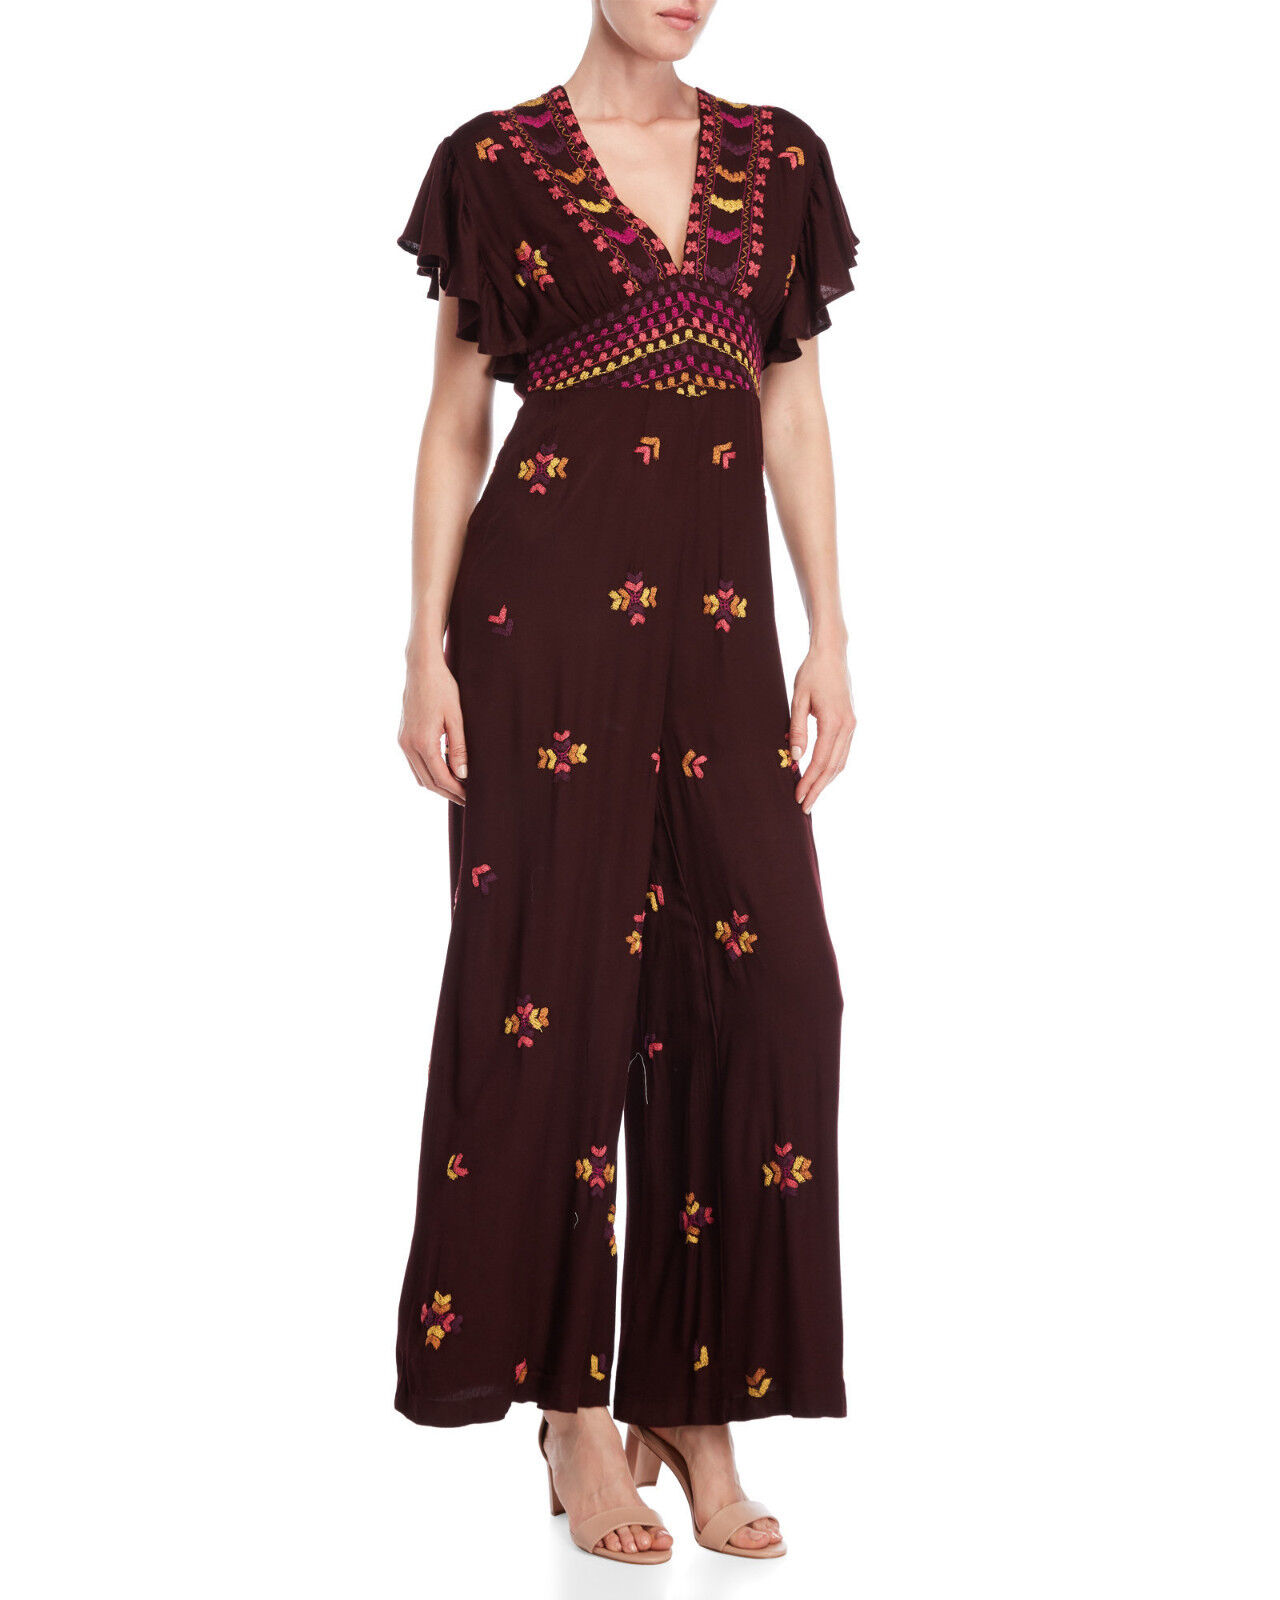 Free People Cleo Embroidered Jumpsuit - Purple Combo Size 4